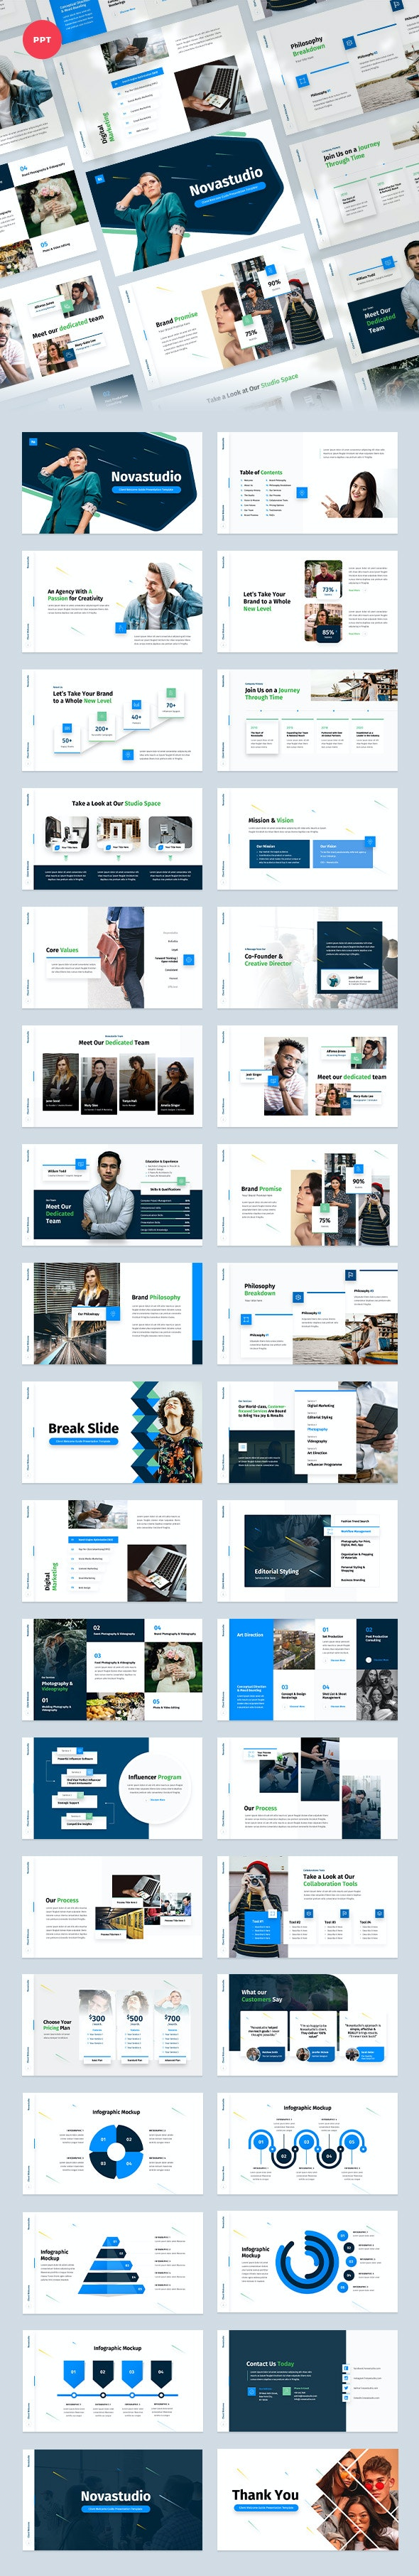 Client Welcome Guide PowerPoint Presentation Template - Business PowerPoint Templates